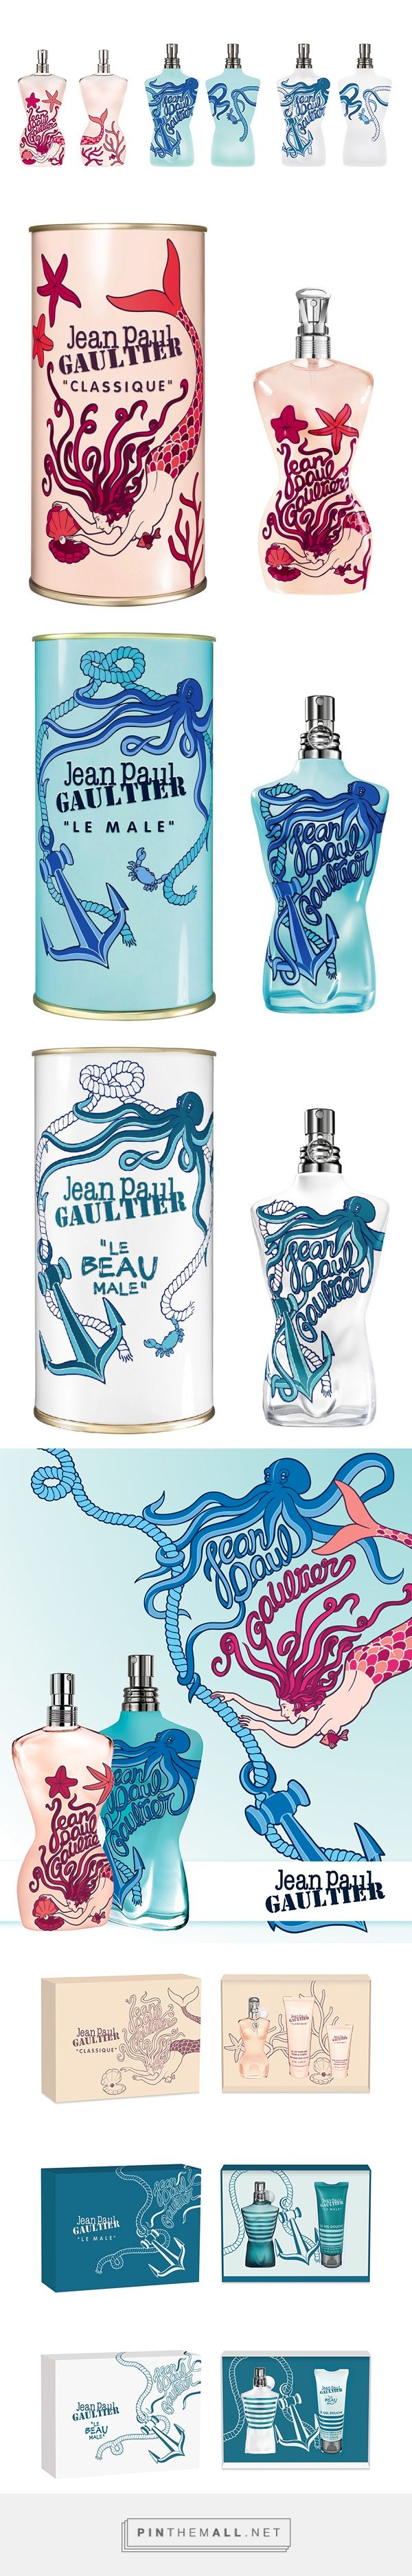 Jean Paul GAULTIER – Summer 2014 Edition | Agence VERSUS curated by Packaging Diva PD. Wow, this is the first time I've seen this great packaging together.